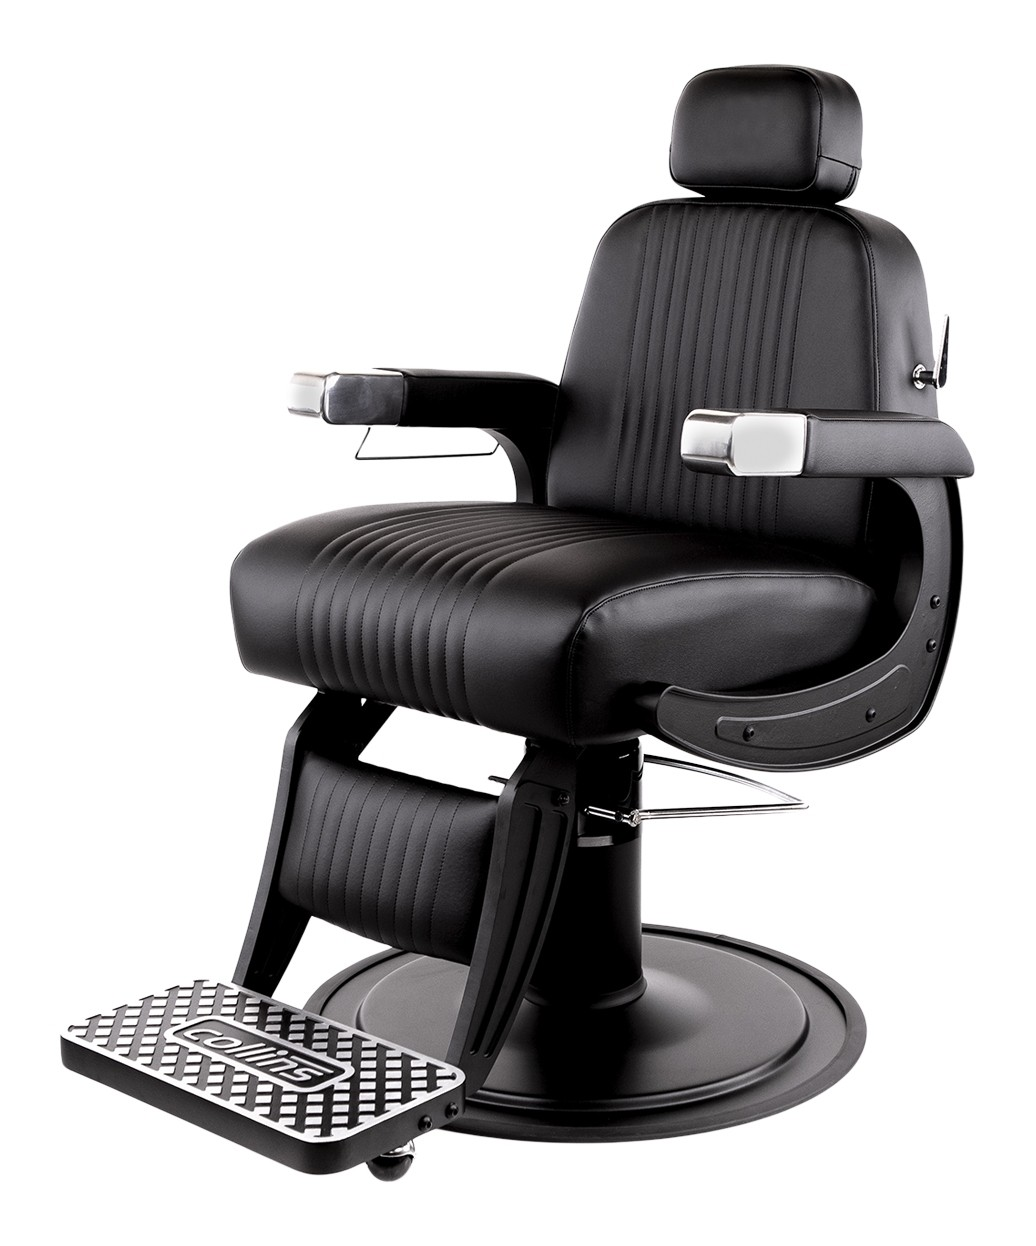 Collins B70B Blacked-Out Cobalt Omega Barber Chair